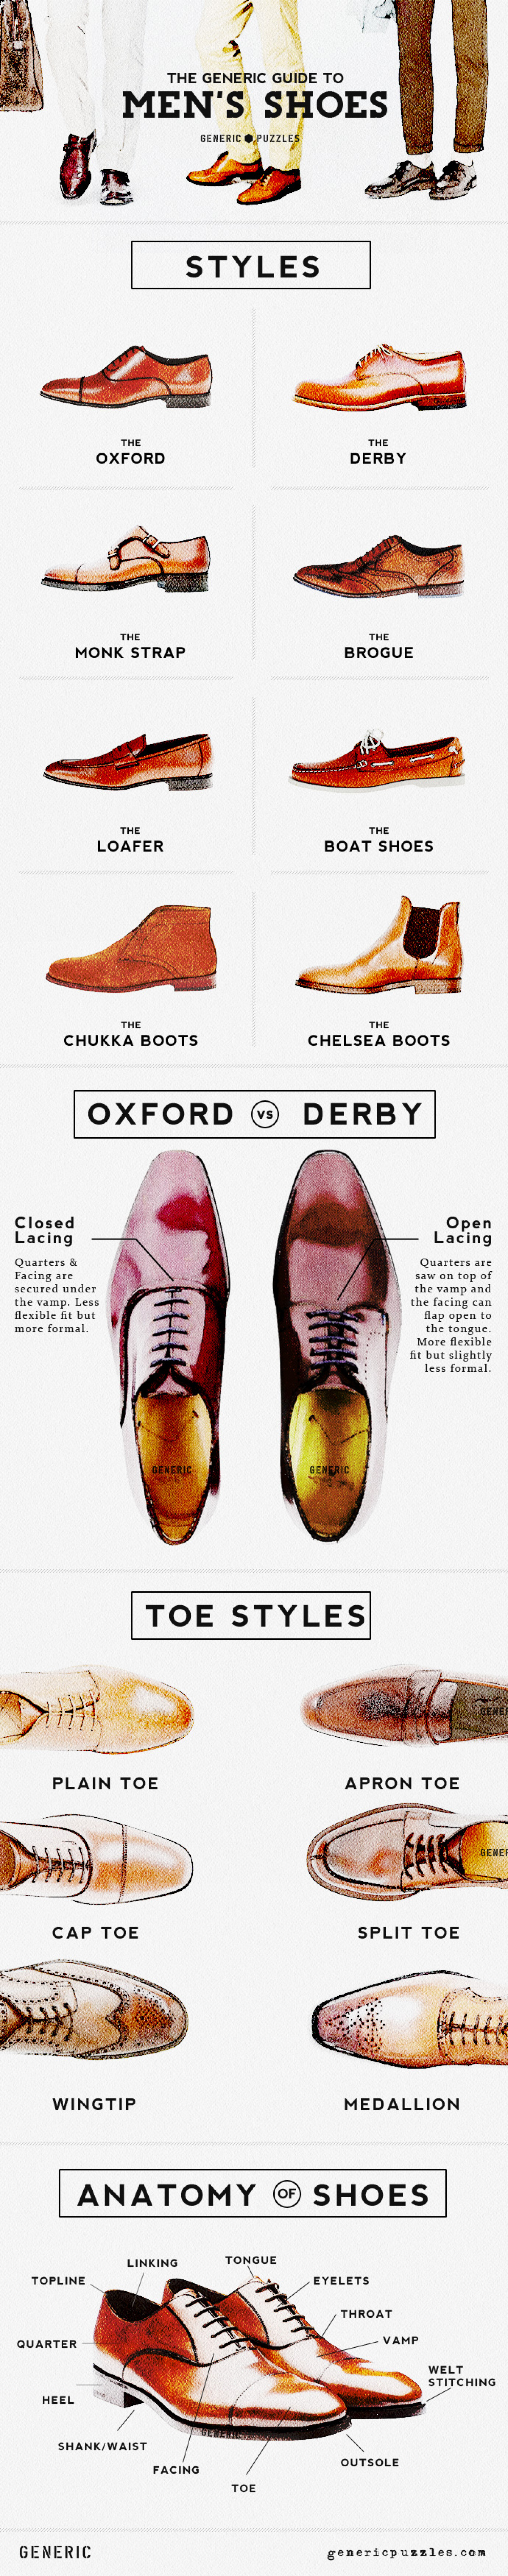 Shoes 101 - Up Your Shoe Game Infographic